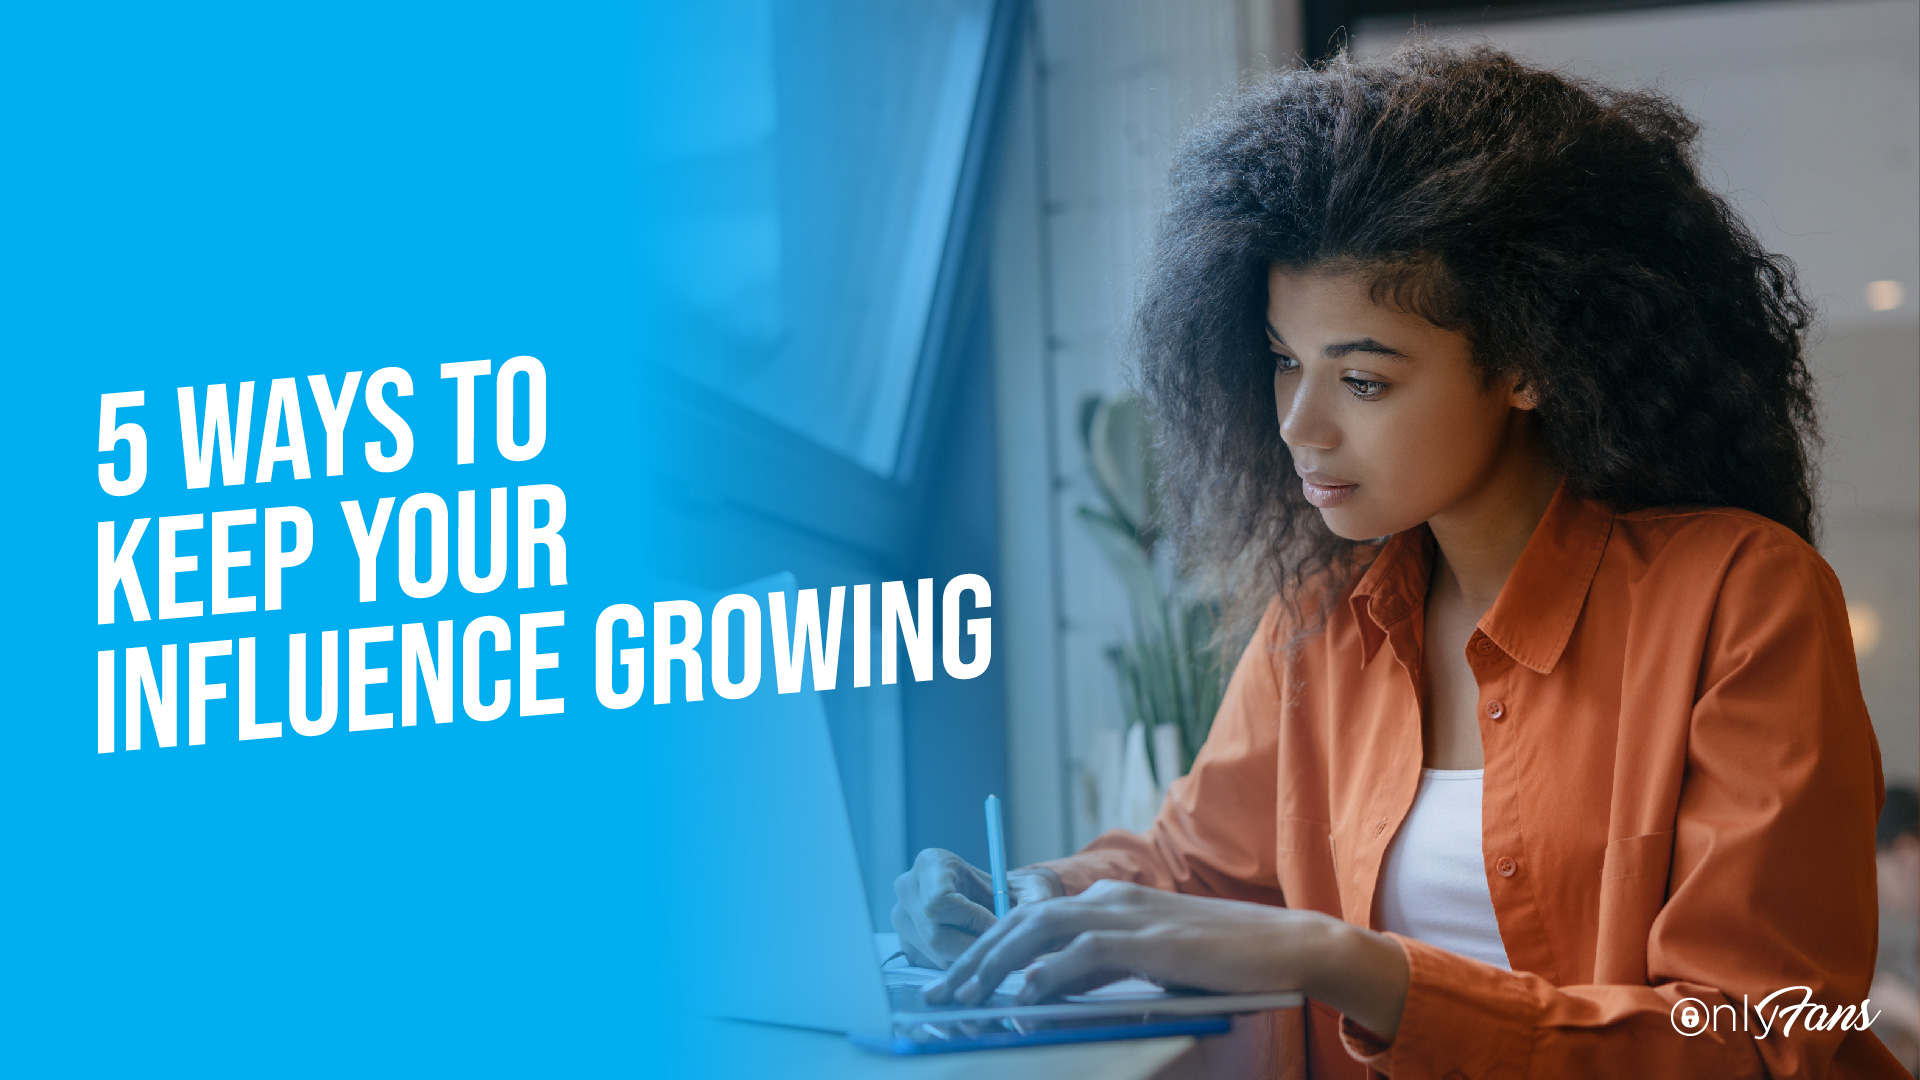 5 ways to keep your influence growing